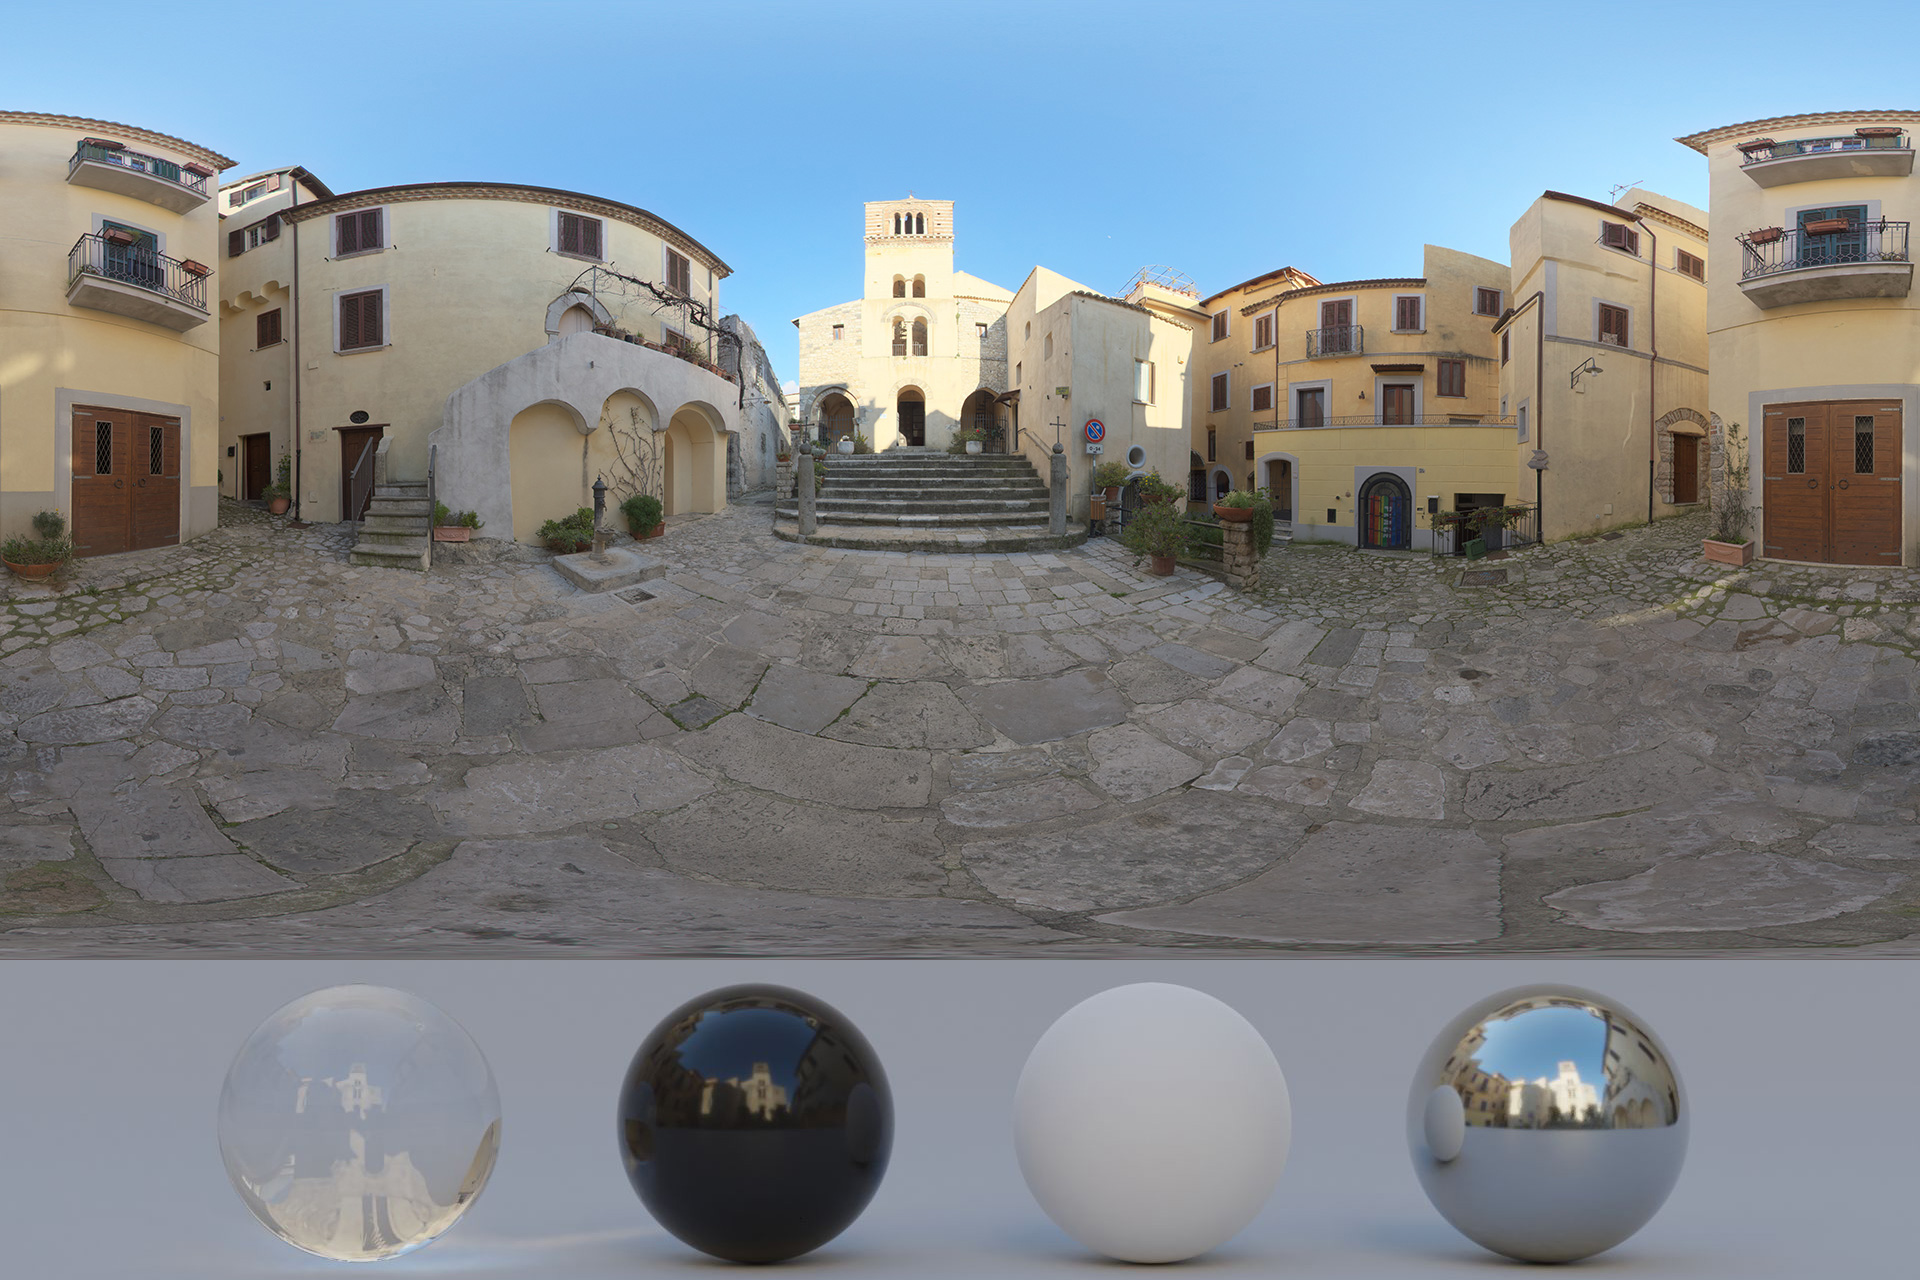 Download Awesome HDRi Italian Old Town